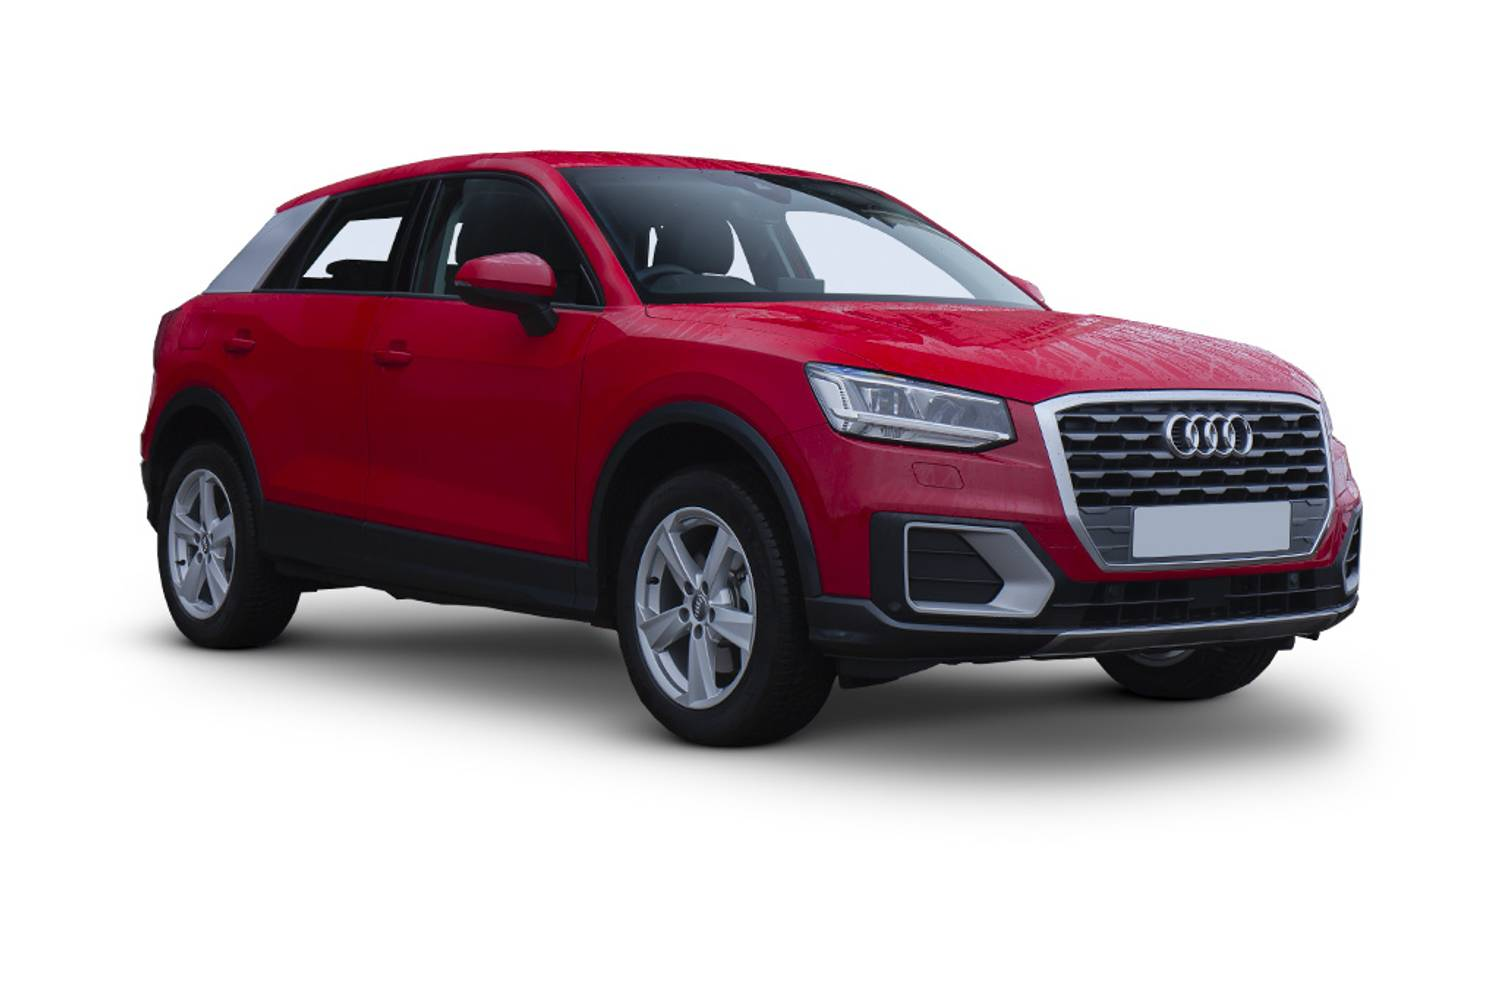 new audi q2 diesel estate 1 6 tdi se 5 door s tronic 2016 for sale. Black Bedroom Furniture Sets. Home Design Ideas